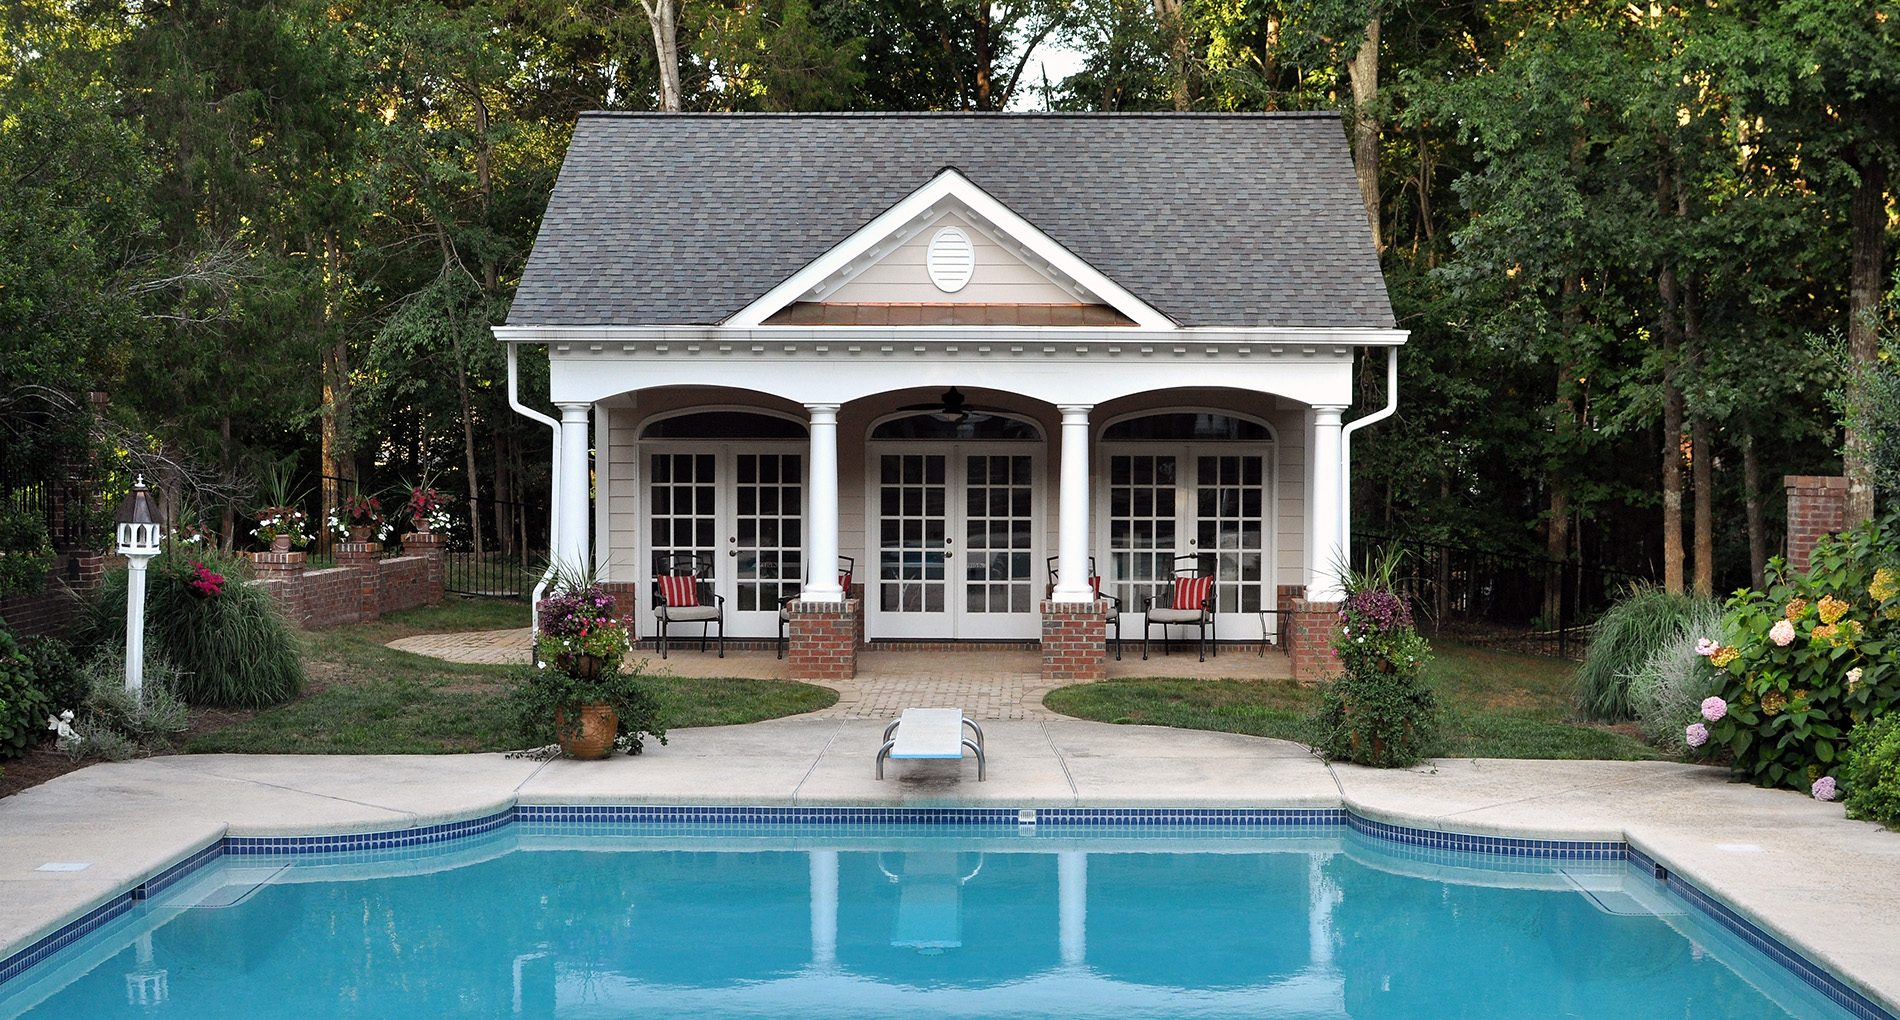 Home Lakenorman Lietz Slider